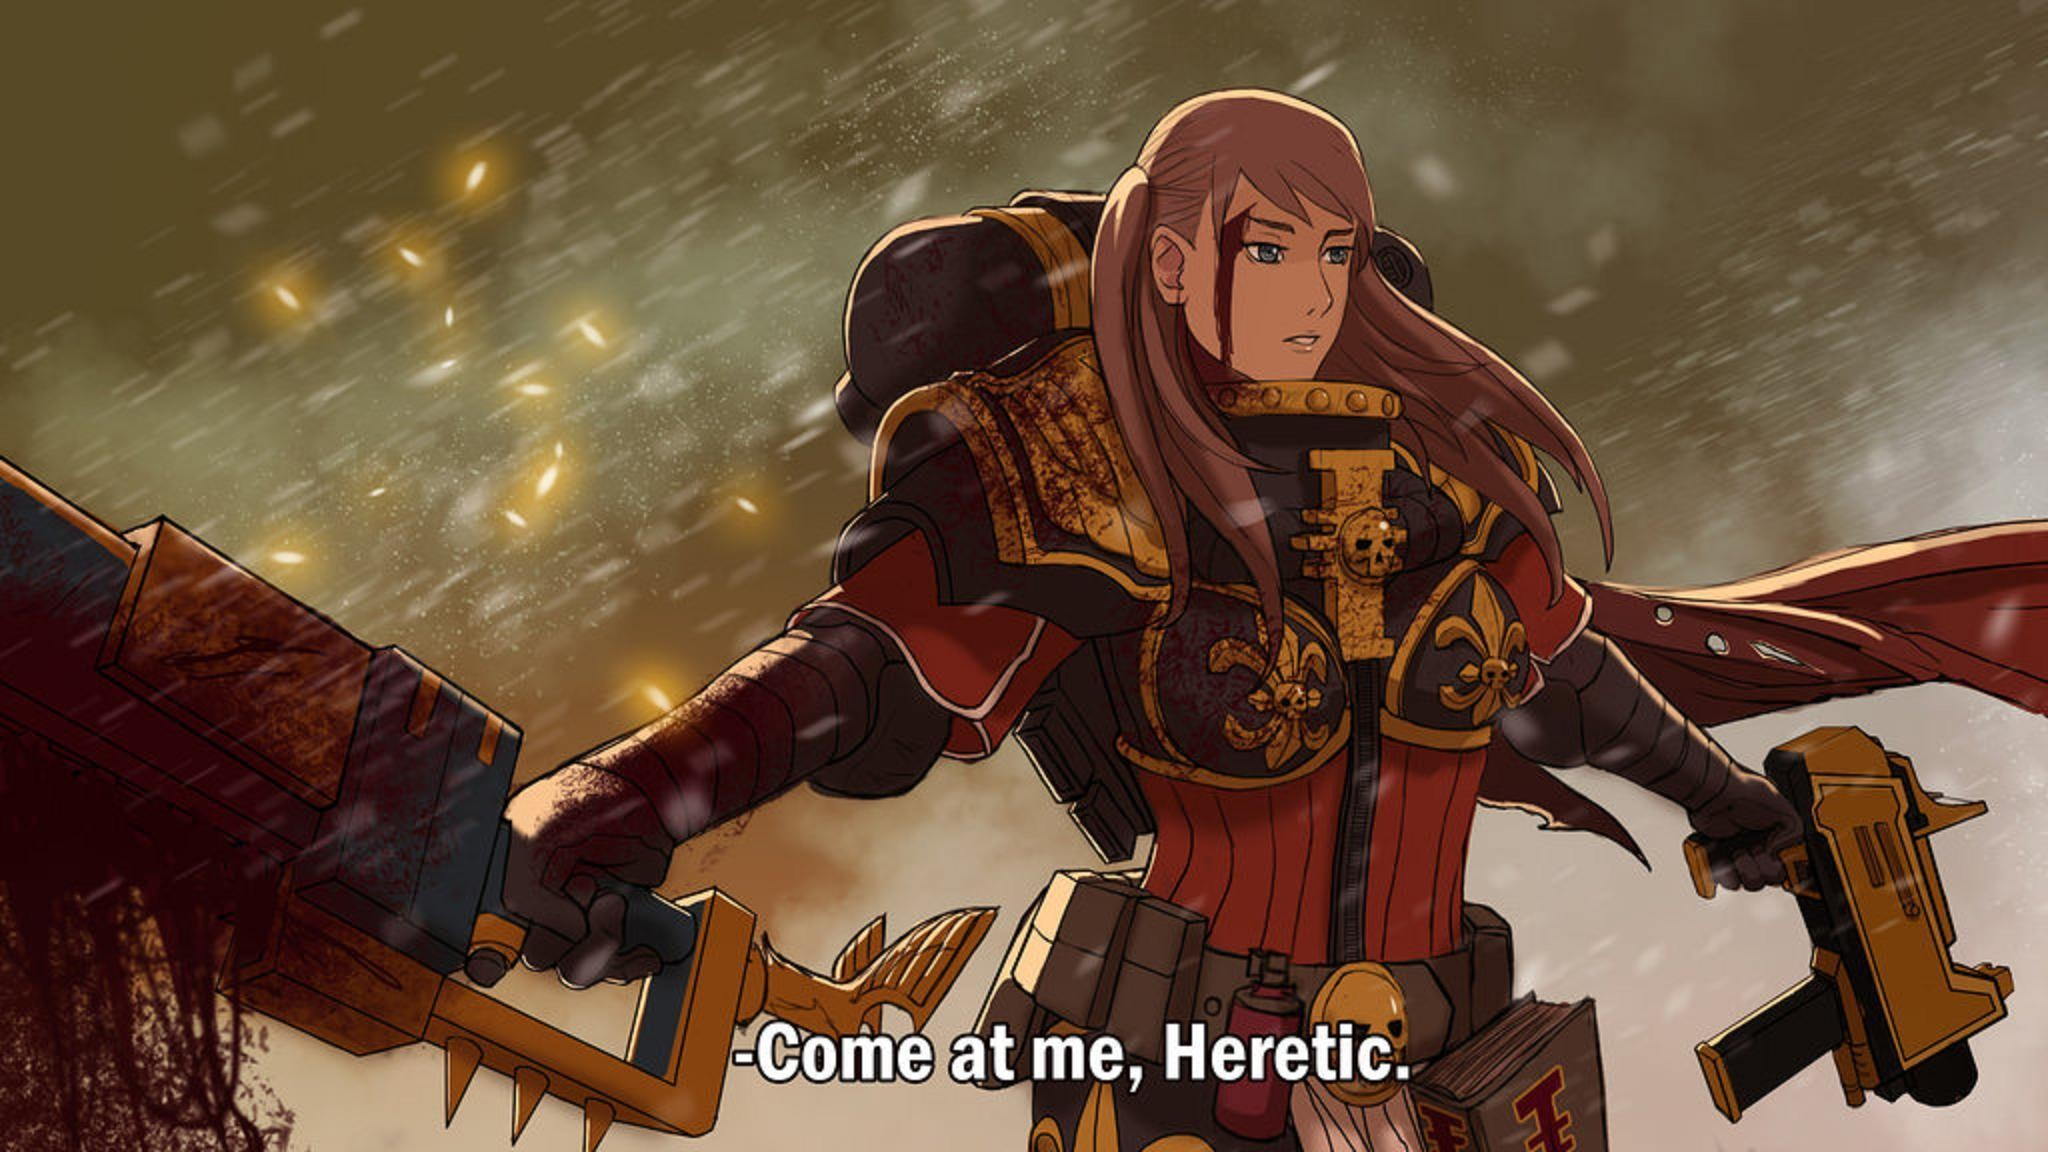 Come At Me, Heretic